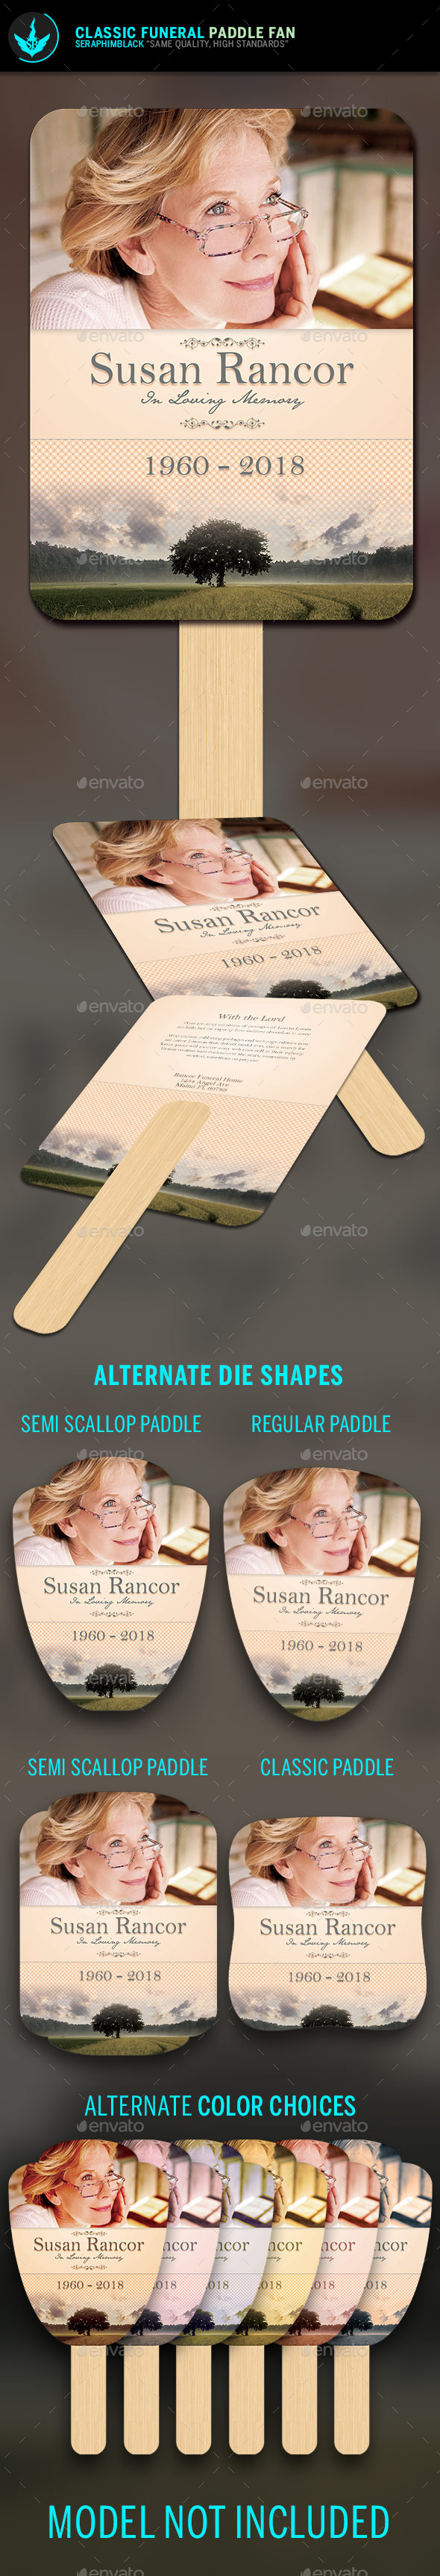 Classic Funeral Paddle Fan Template - Miscellaneous Print Templates